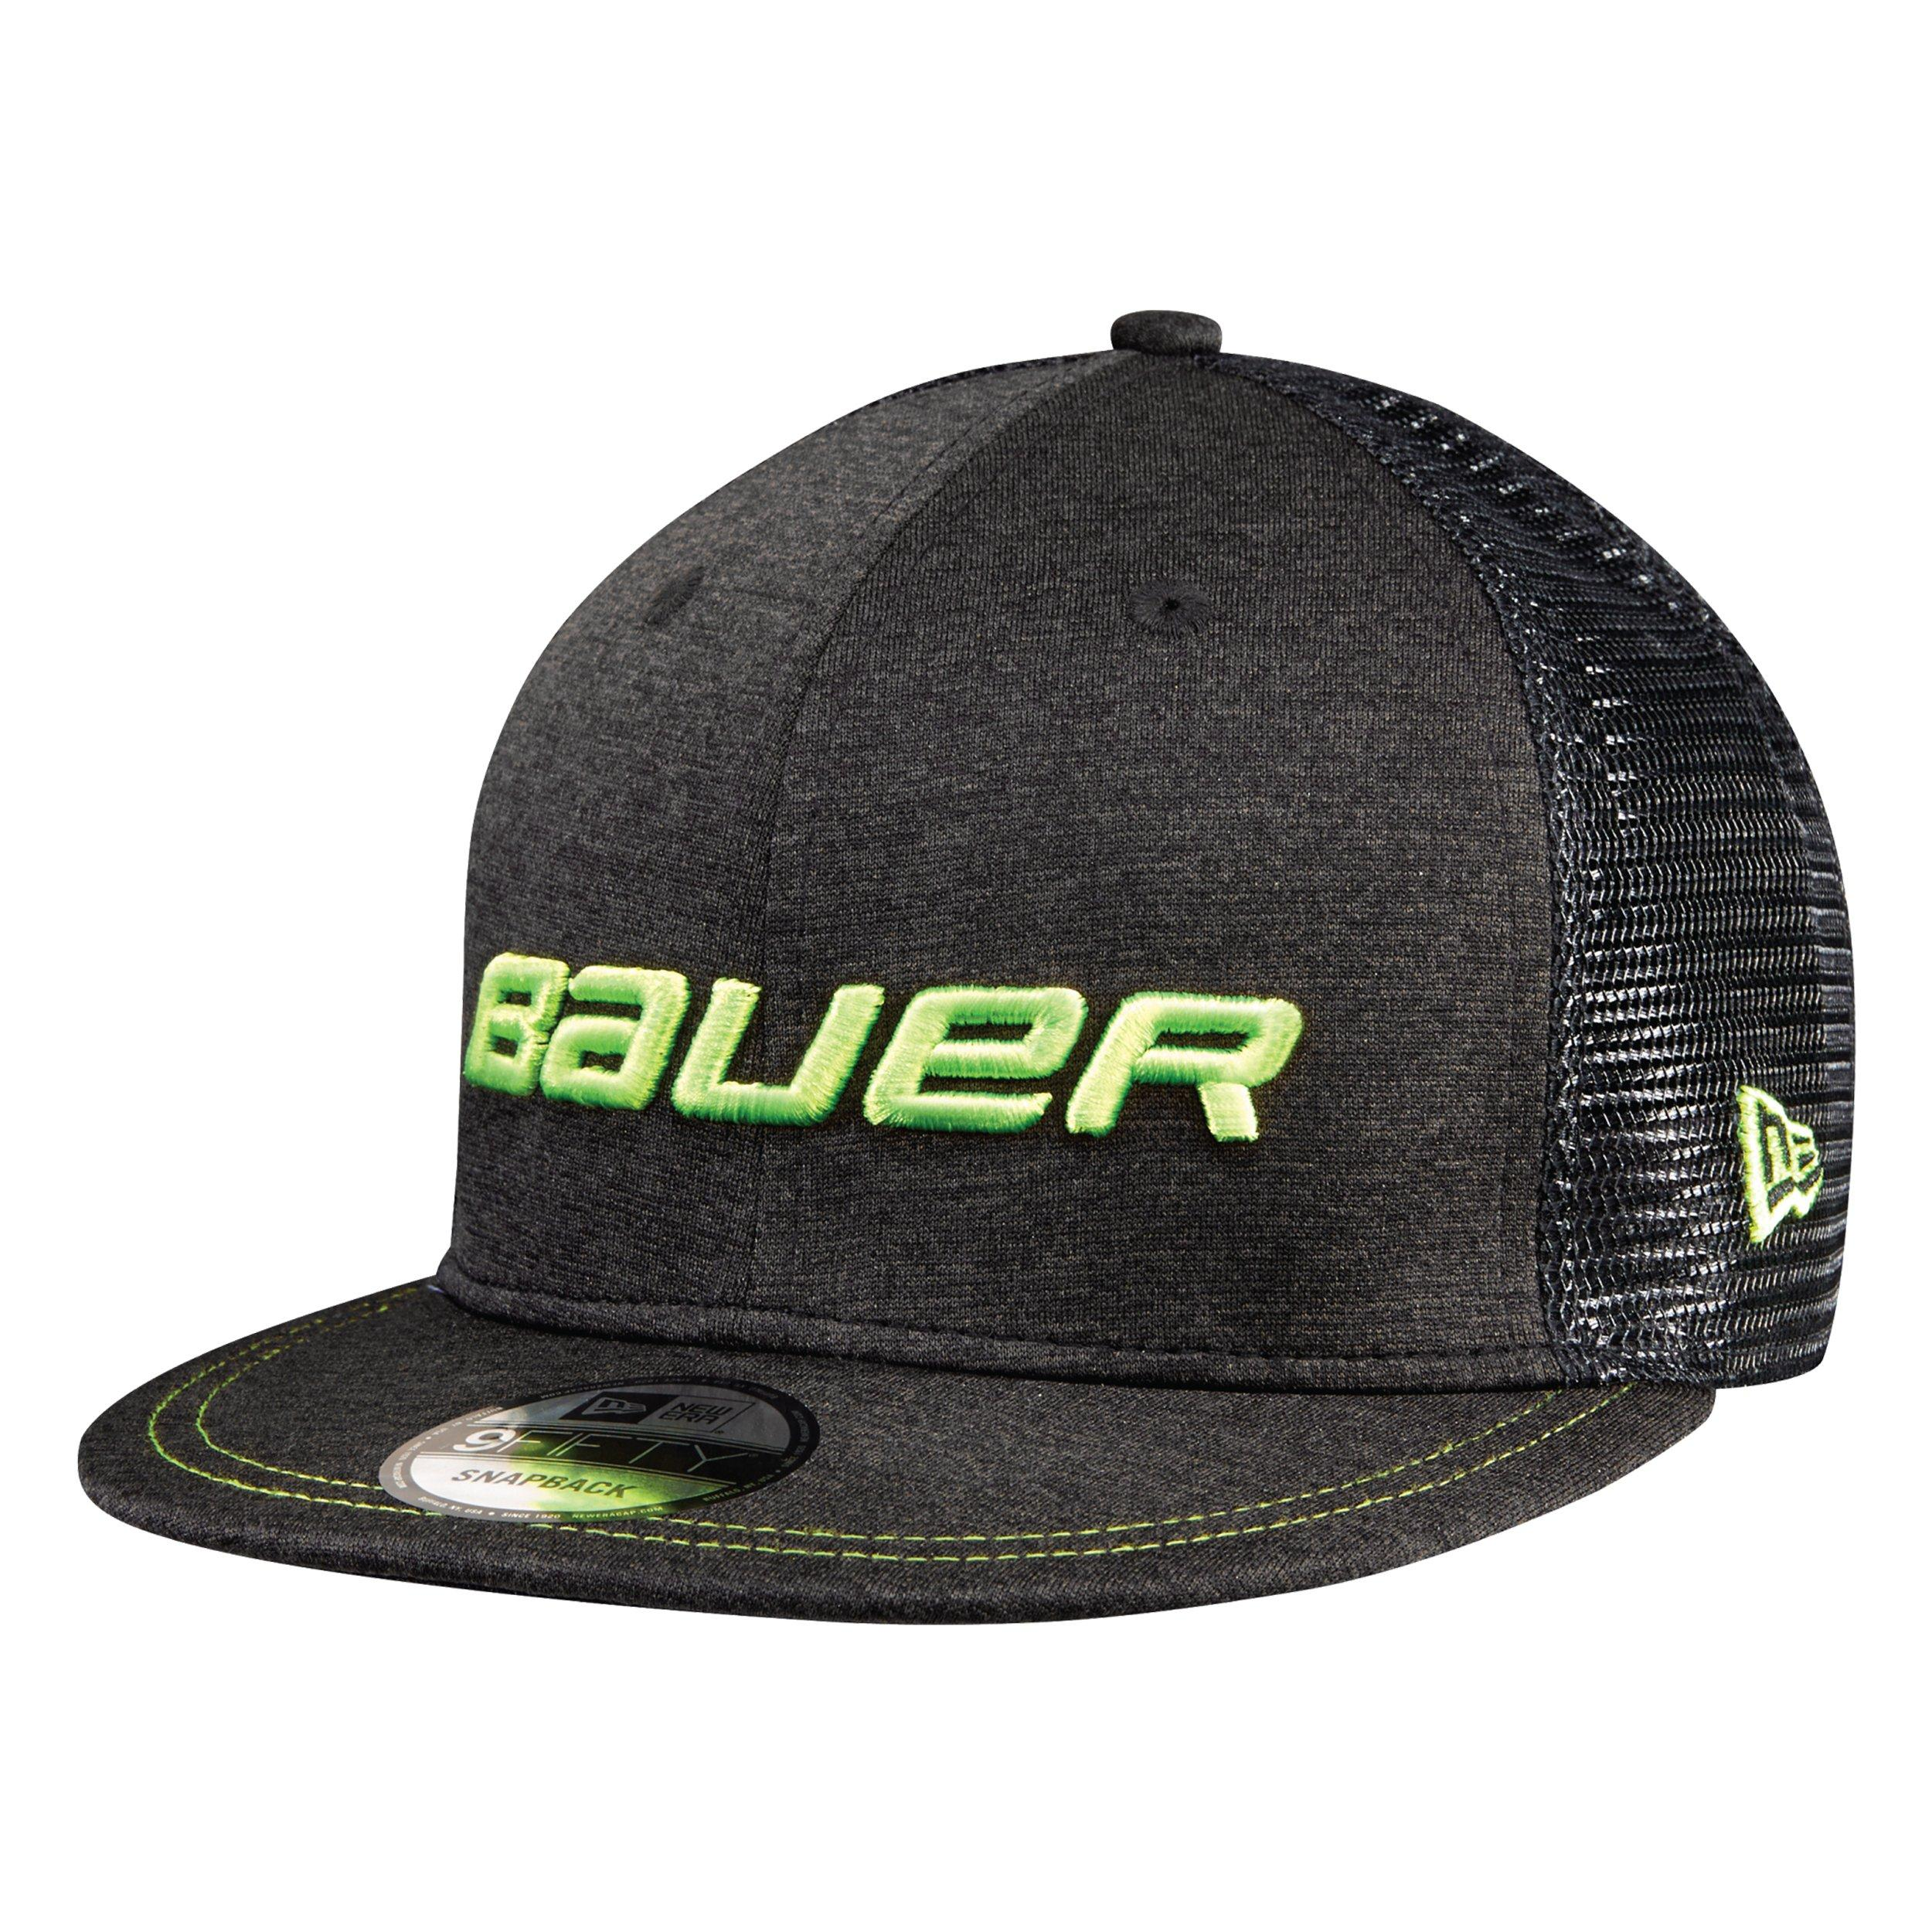 BAUER / New Era® 9FIFTY® Color Pop Adjustable Cap Senior,,moyen